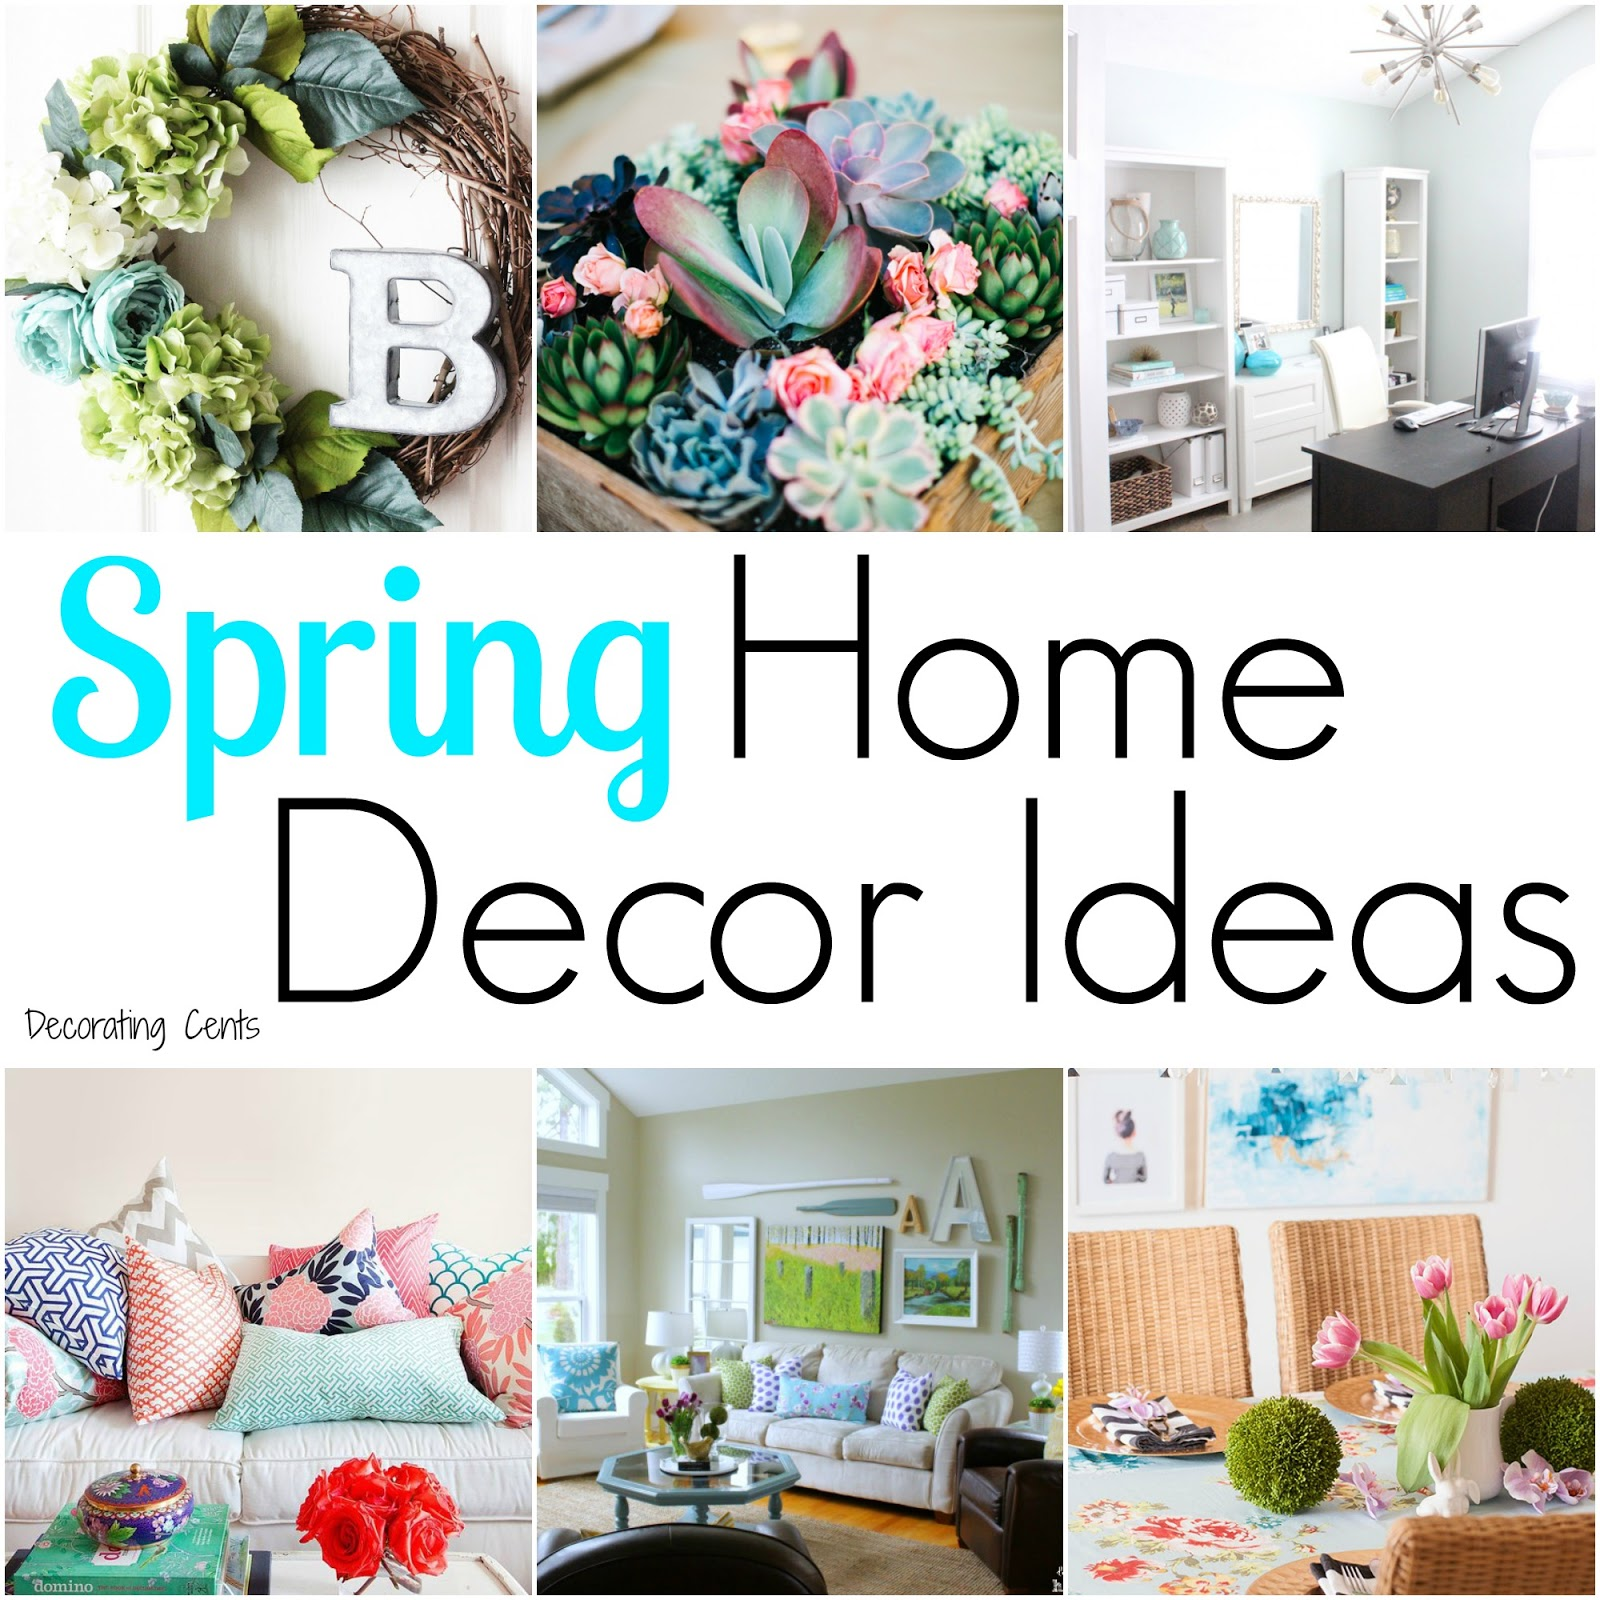 Decorating cents spring home decor ideas for Ideas to decorate your house